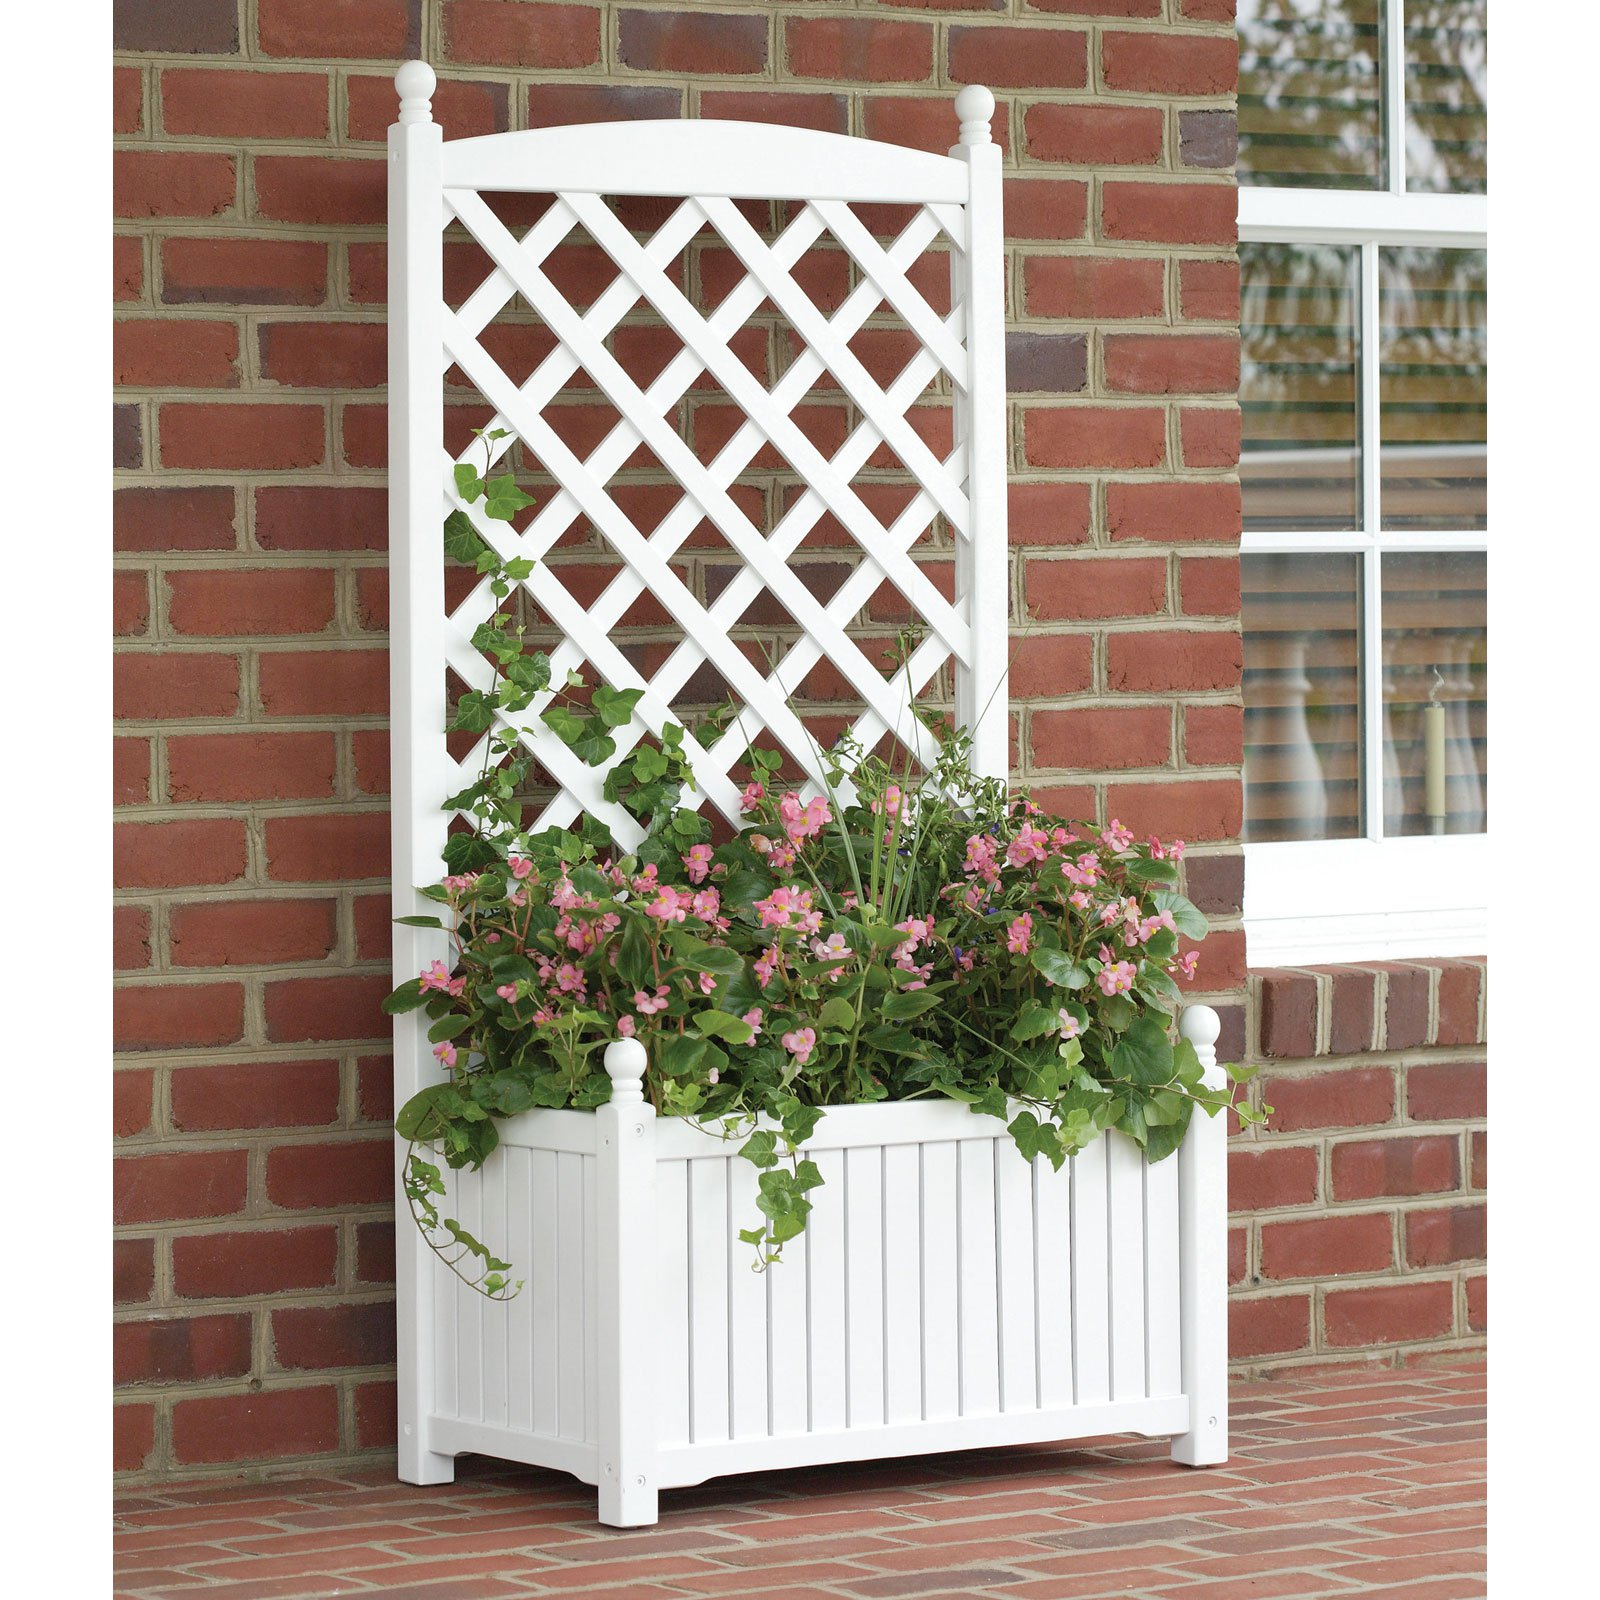 4.5-Foot Rectangle Solid Wood Lexington Lattice Planter with Trellis